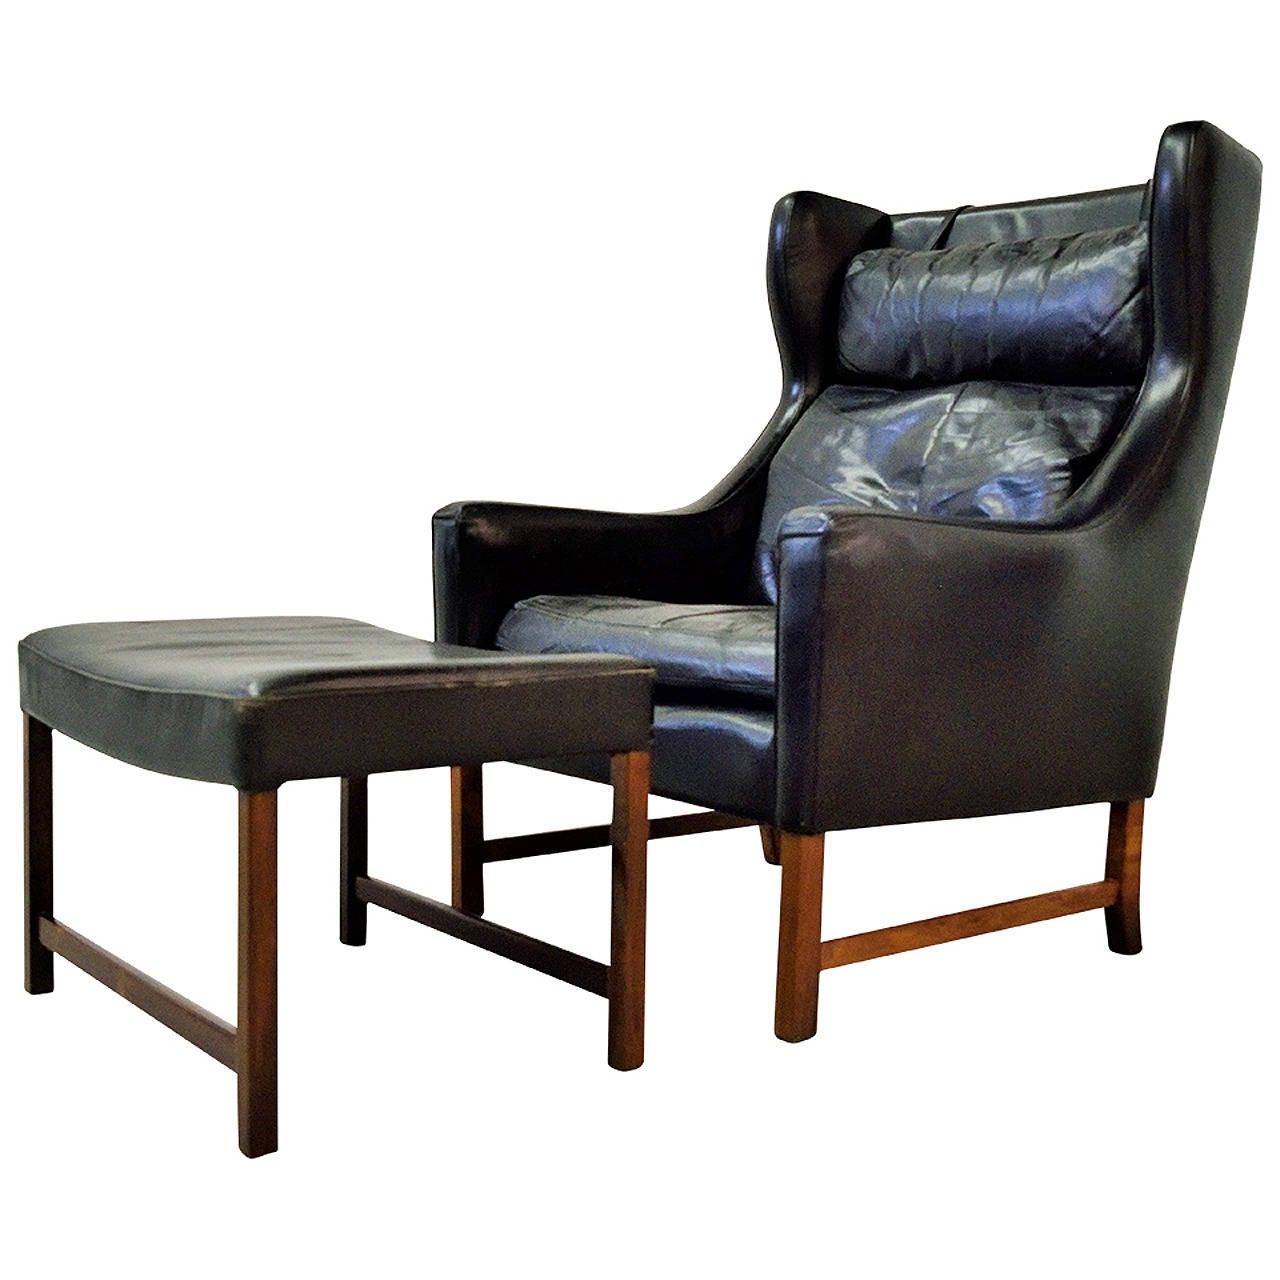 Wing chair with ottoman - Fredrik Kayser High Back Leather Wing Chair And Ottoman 1